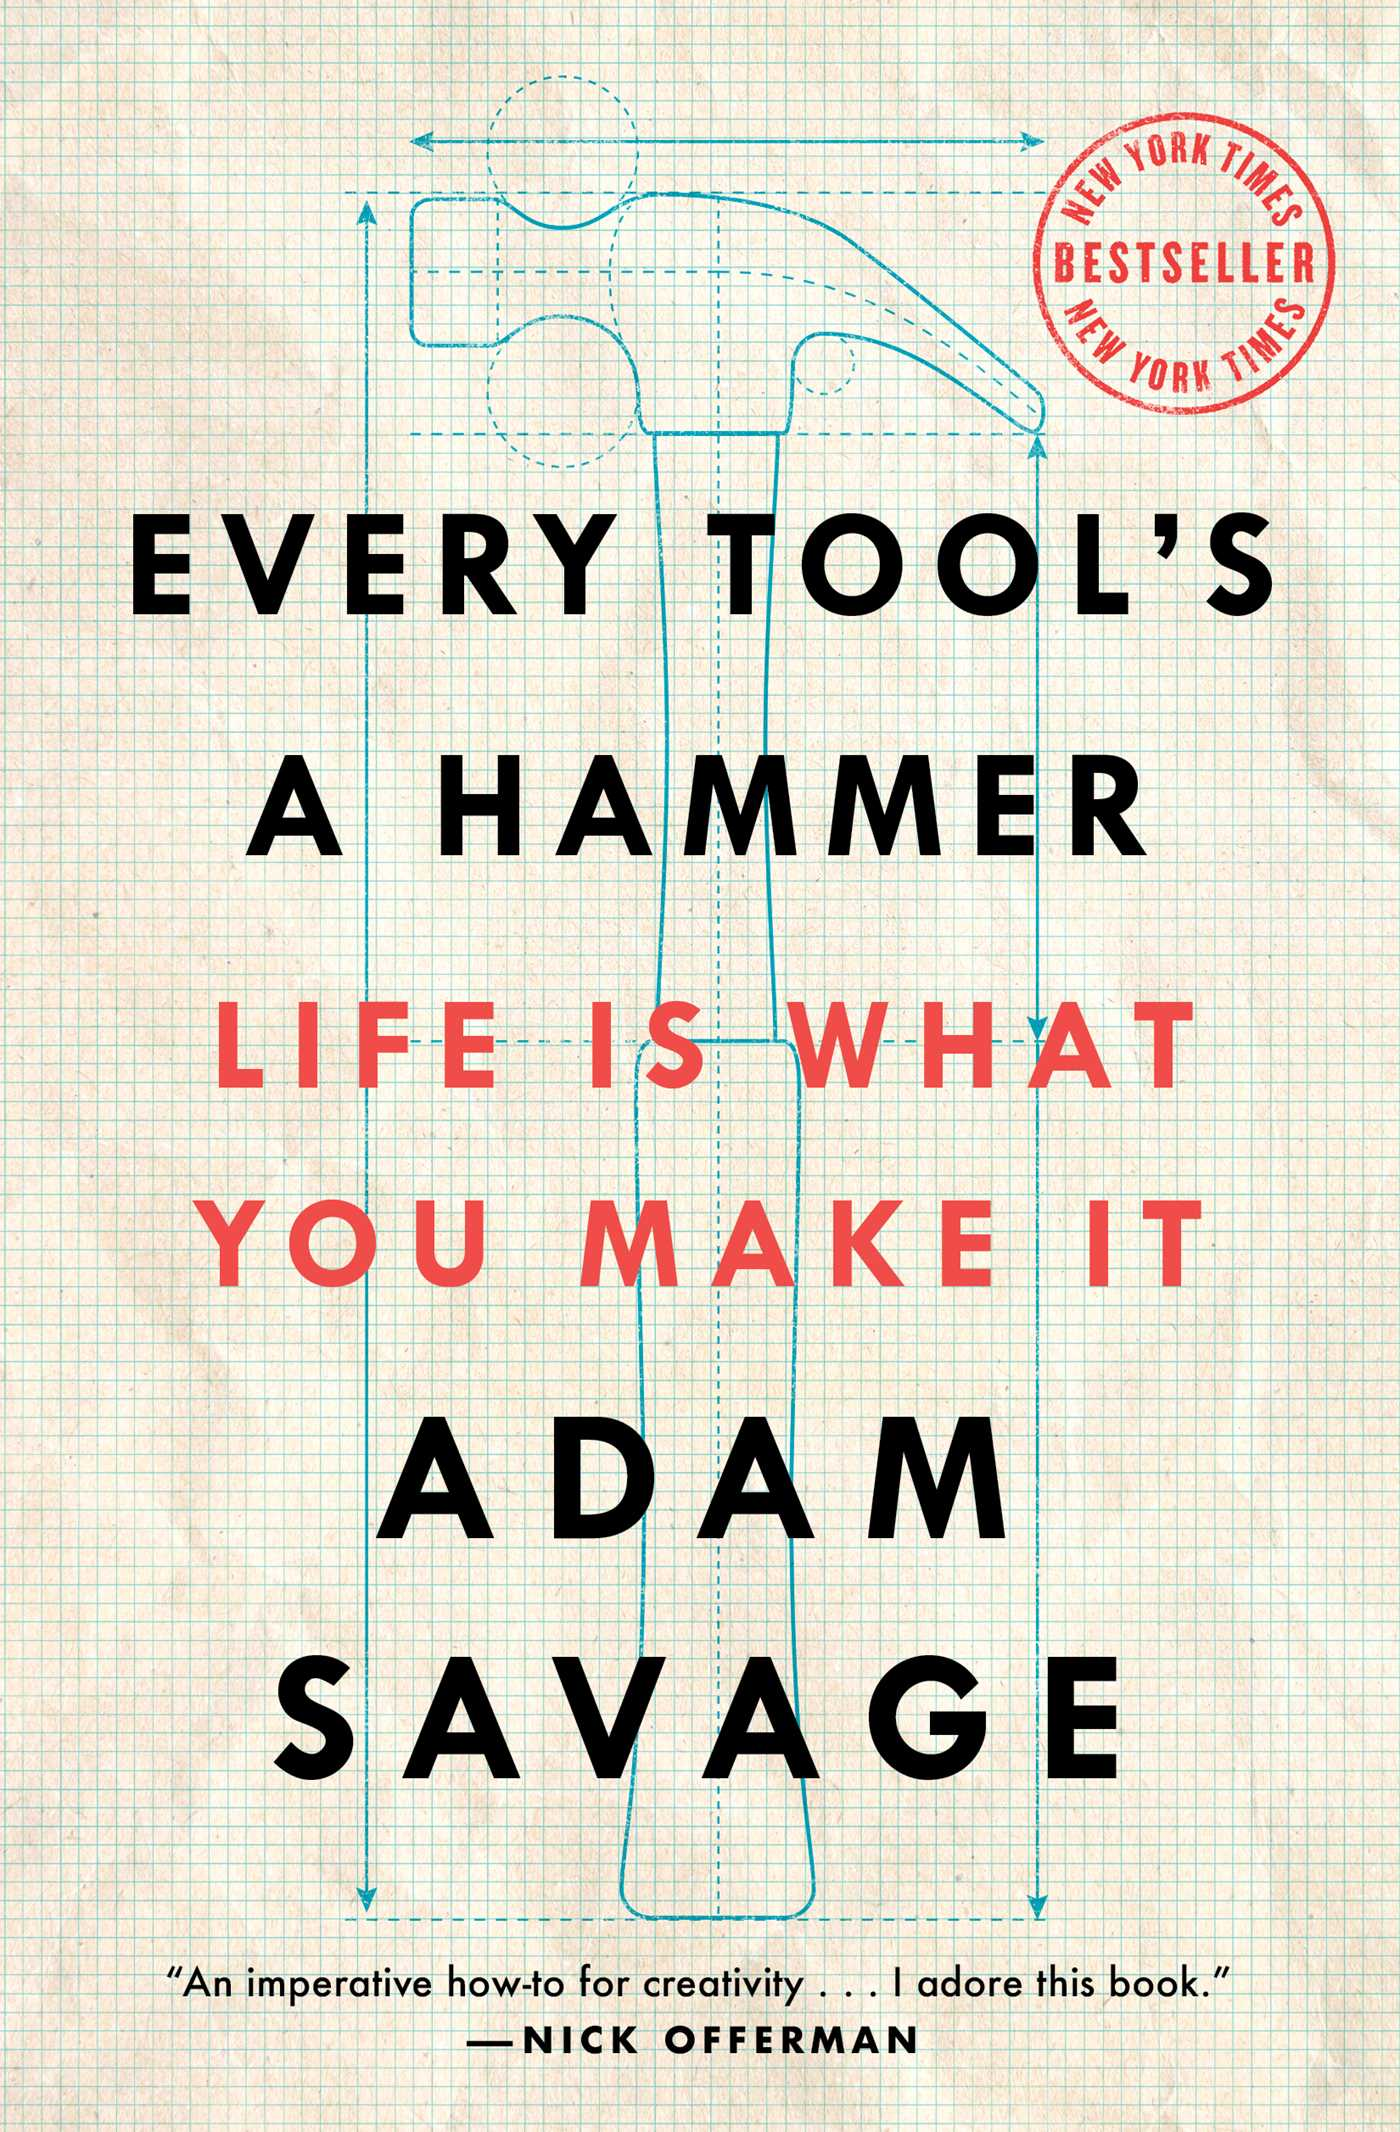 Every Tool's a Hammer Life Is What You Make It